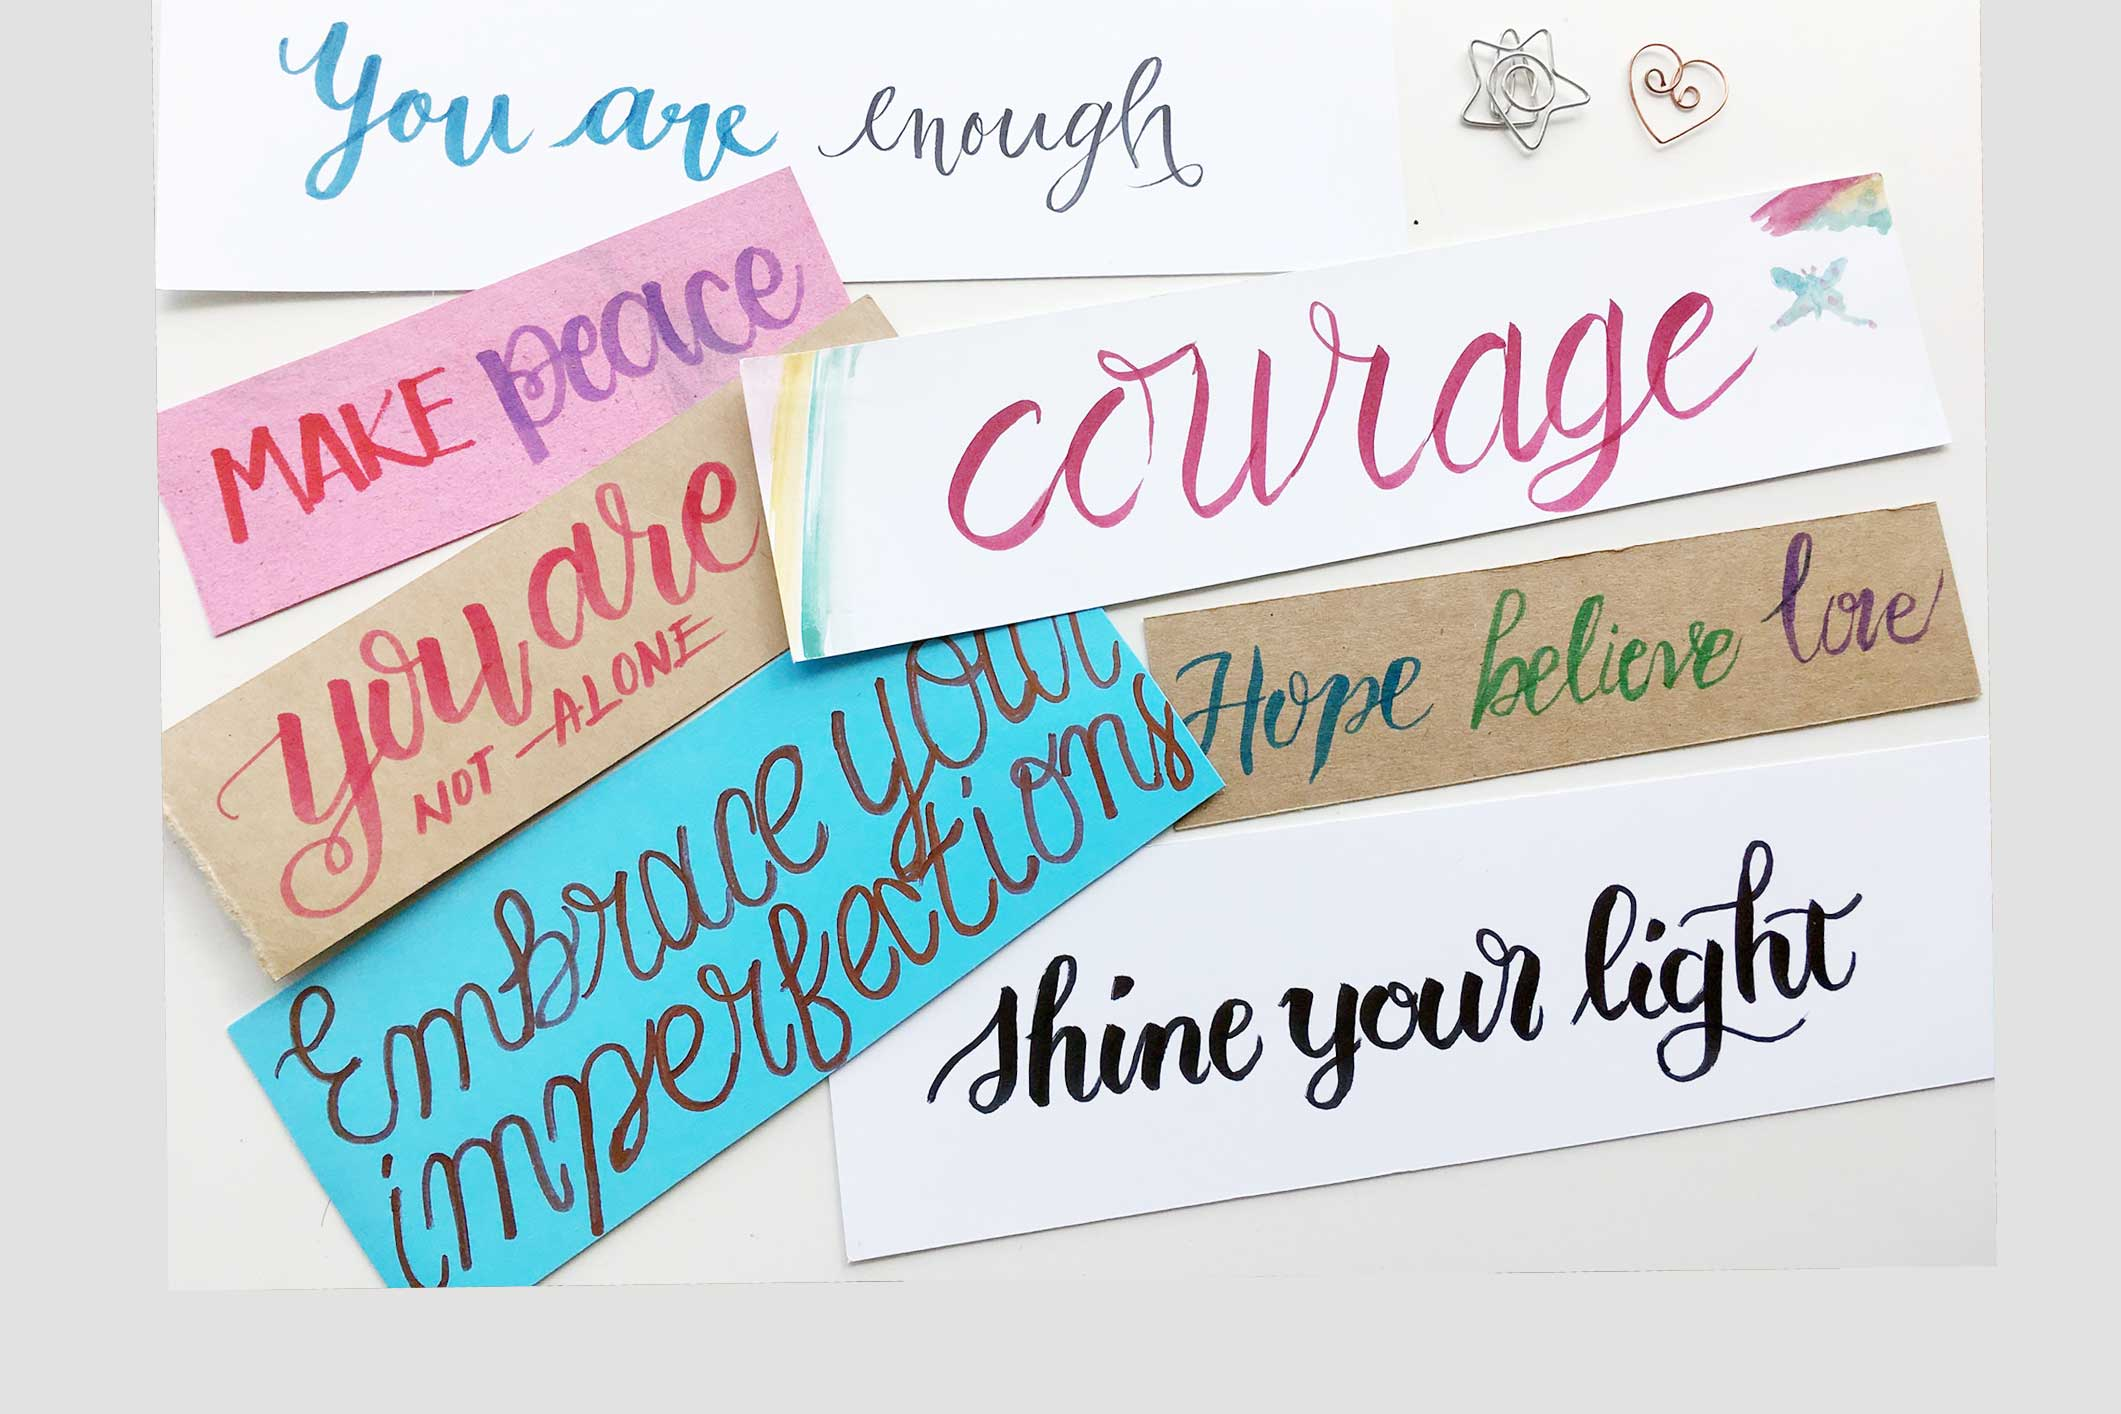 Notes of positivity - Notes of encouragement written in calligraphy donated to the marginalized clients you serve to increase connection and foster well being.